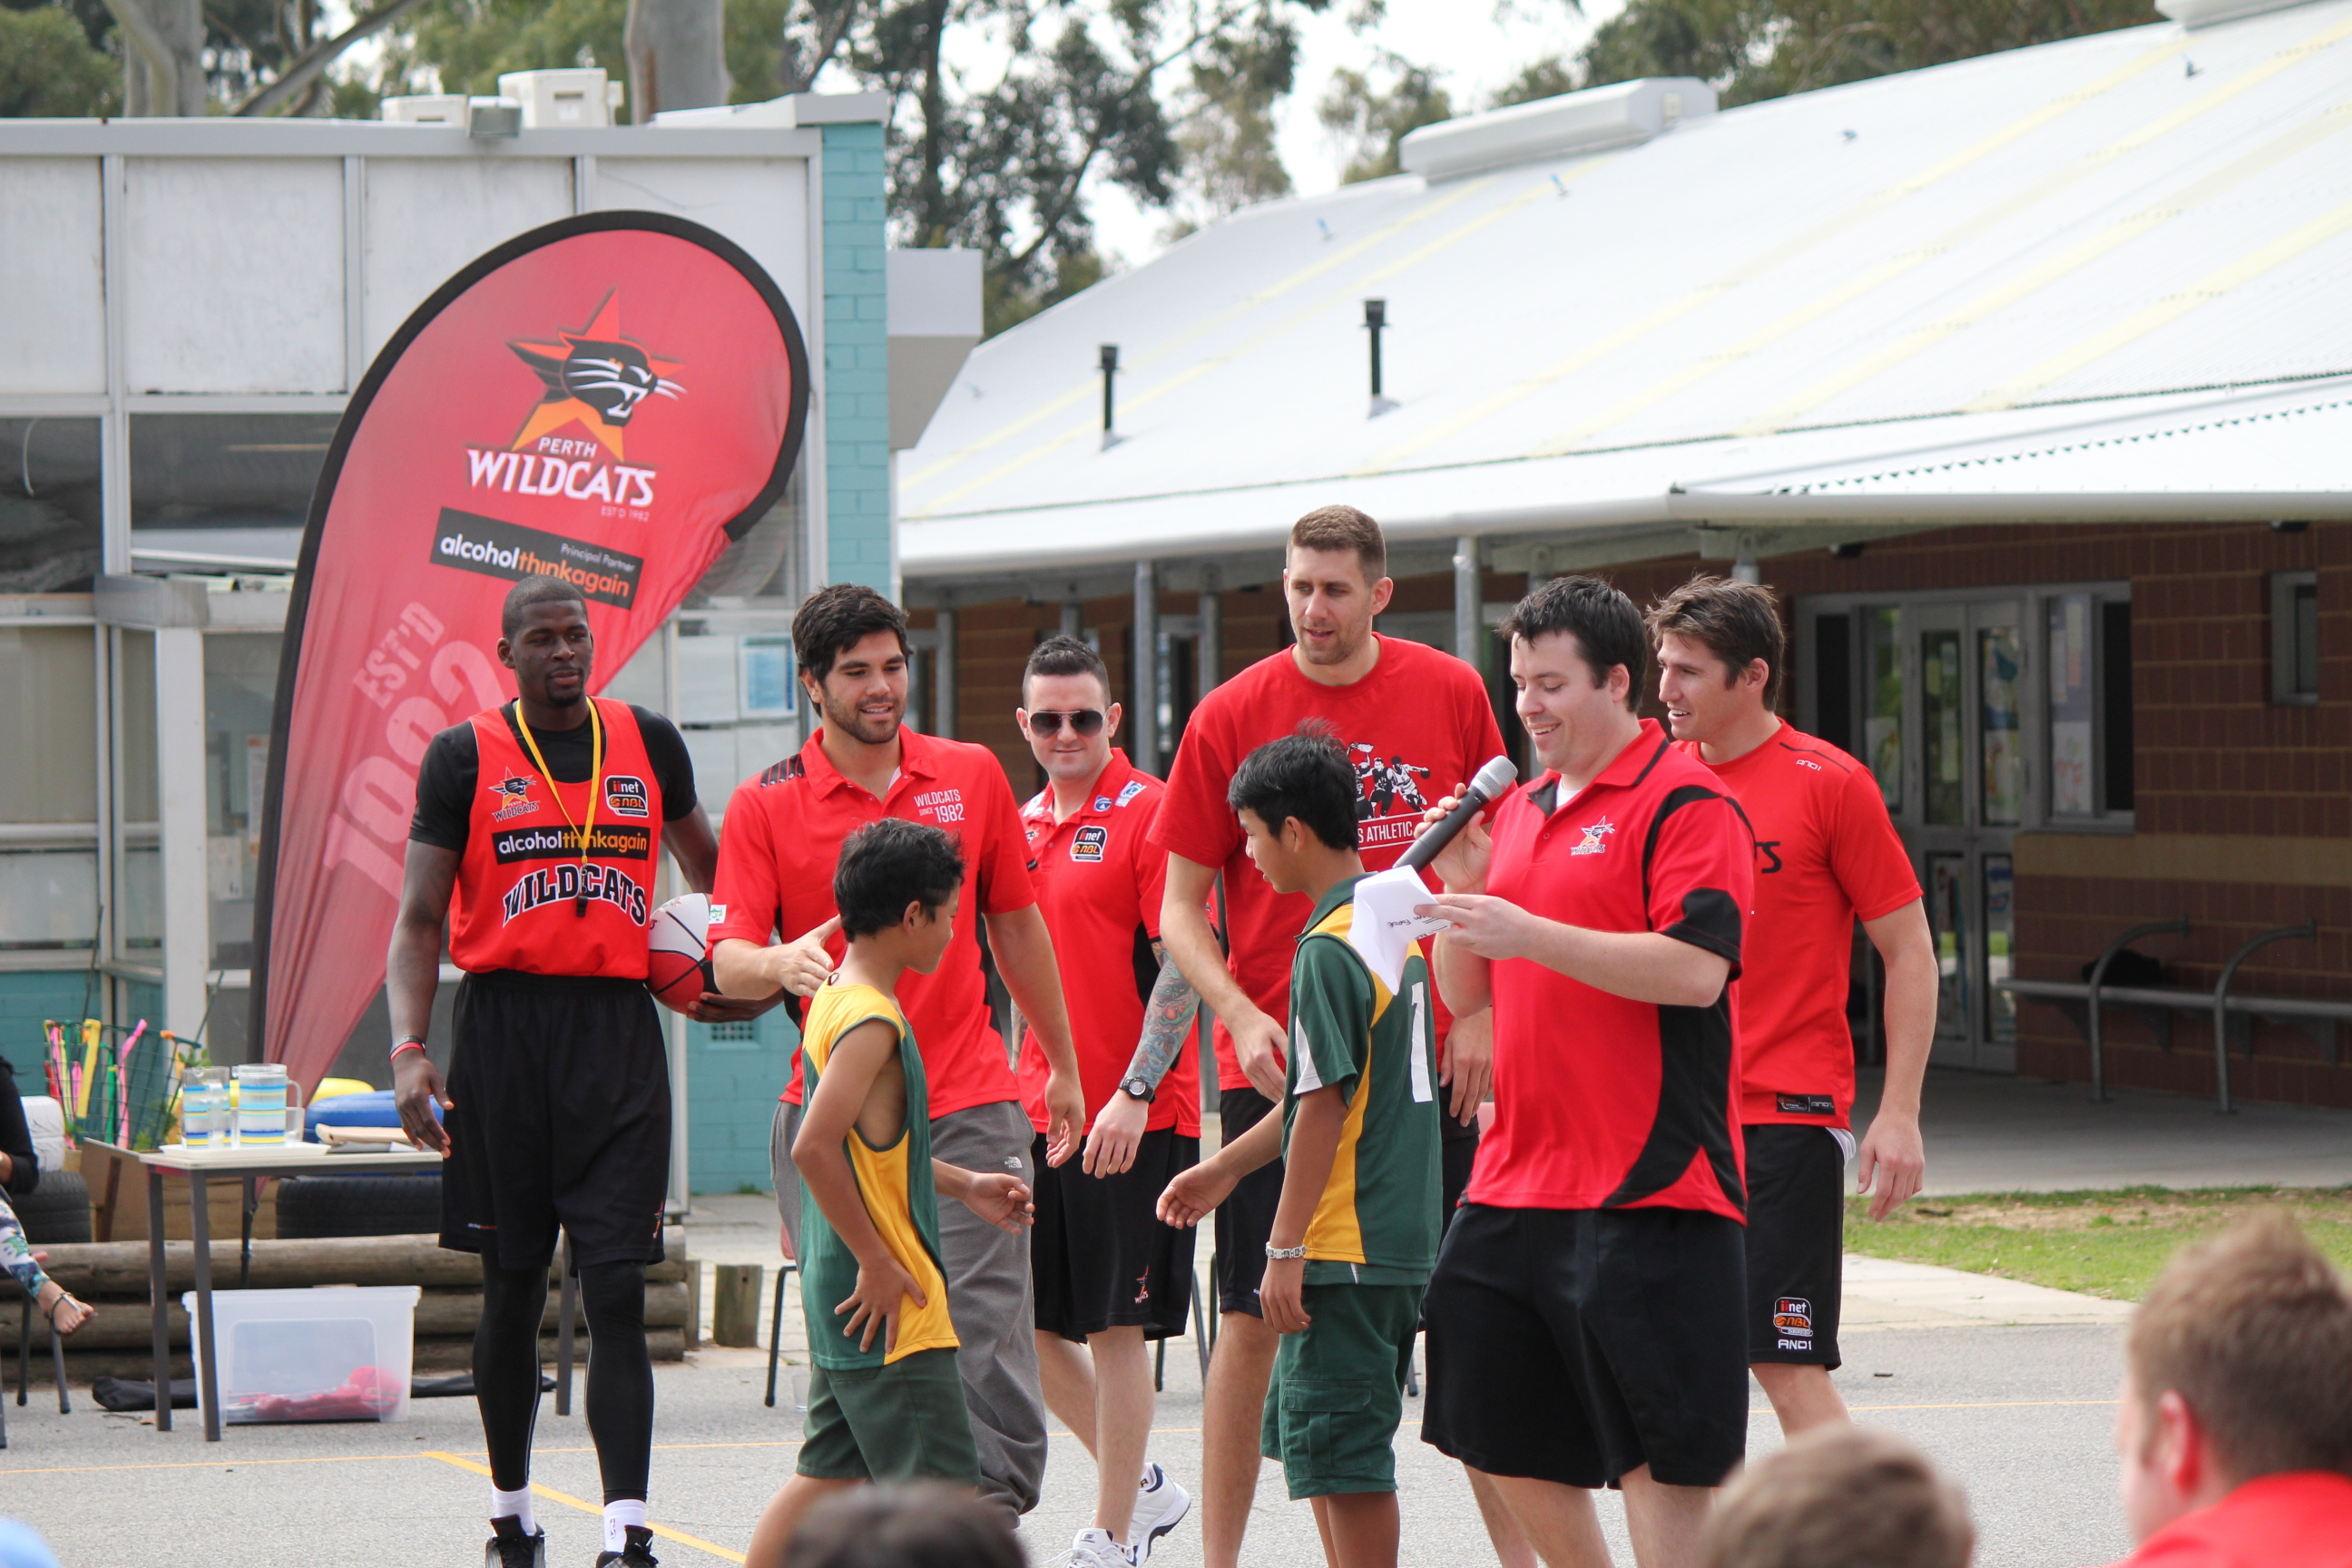 perth wildcats - photo #13